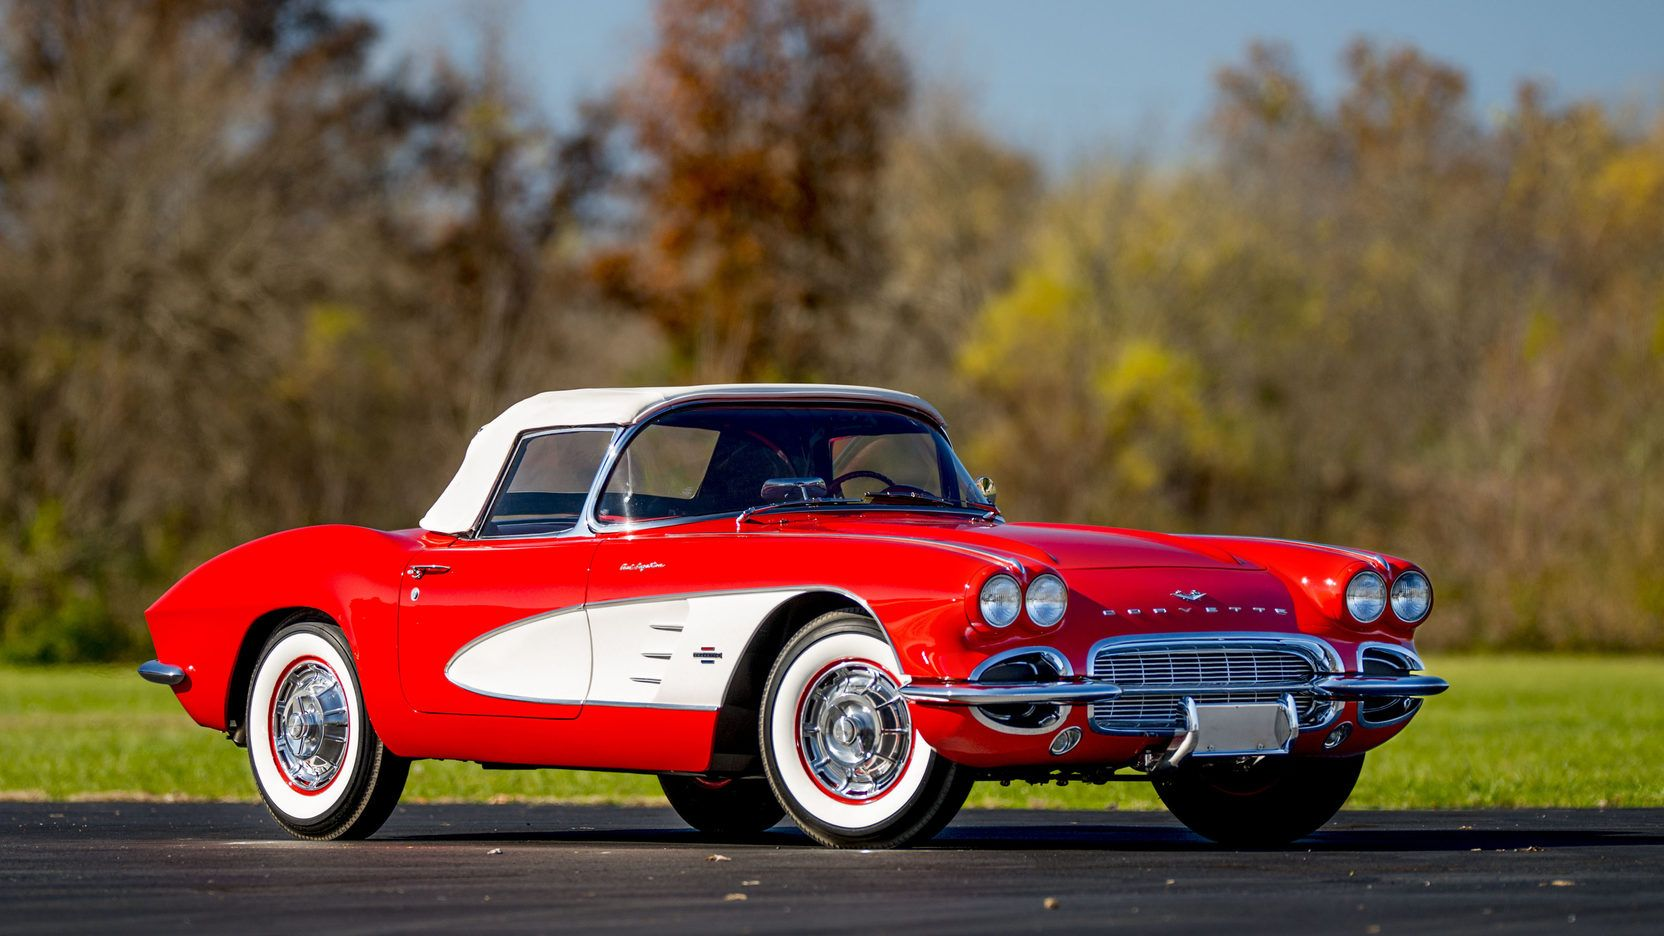 These Are 10 The Sickest Chevrolets From The 1960s | HotCars